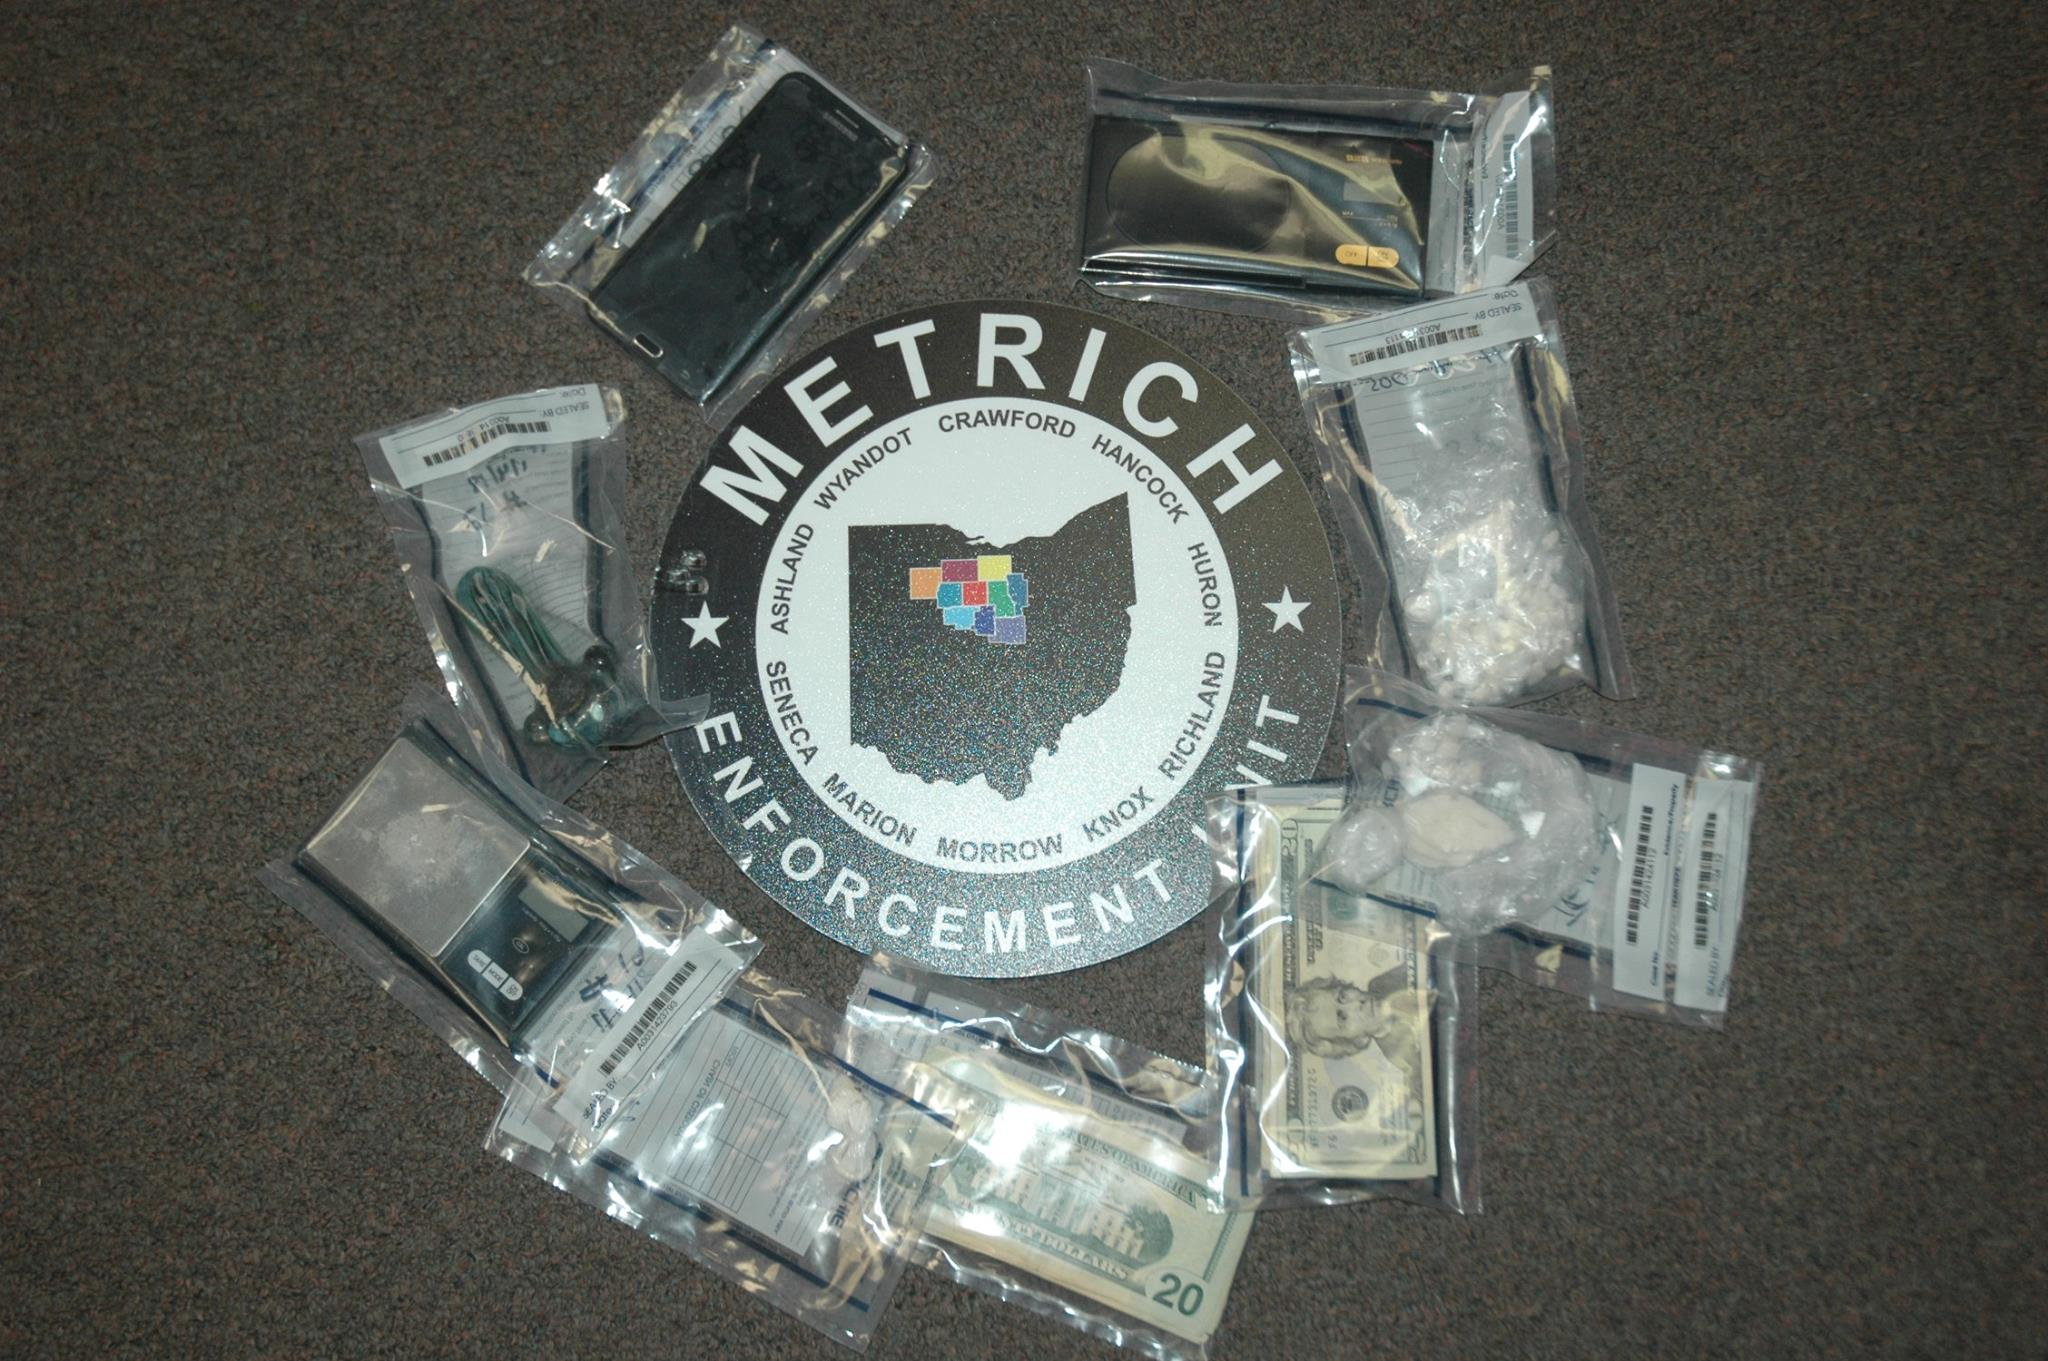 Drug-related warrants executed